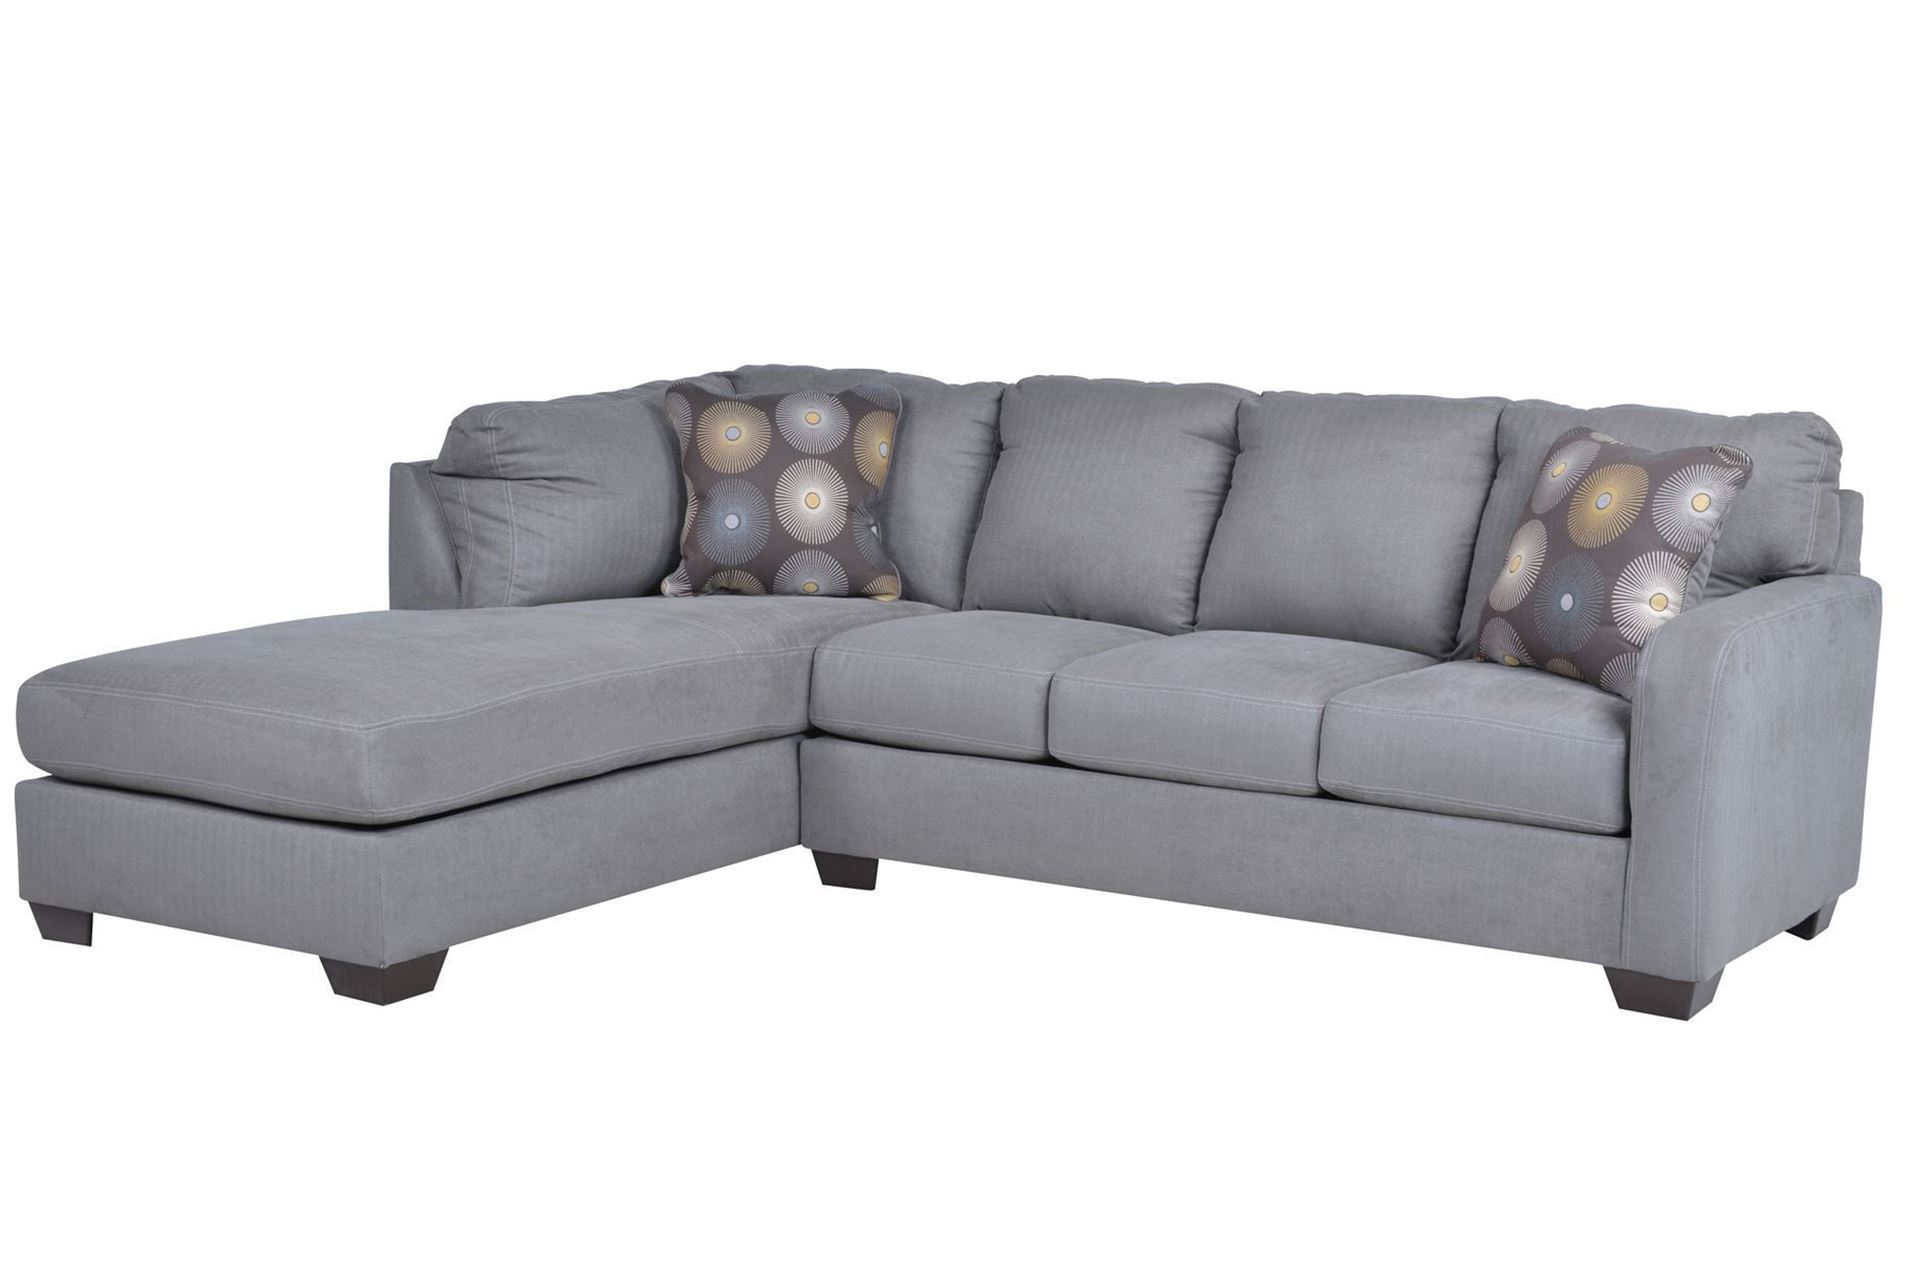 Zella charcoal 2 piece sectional w laf chaise living spaces for 2 piece chaise sectional